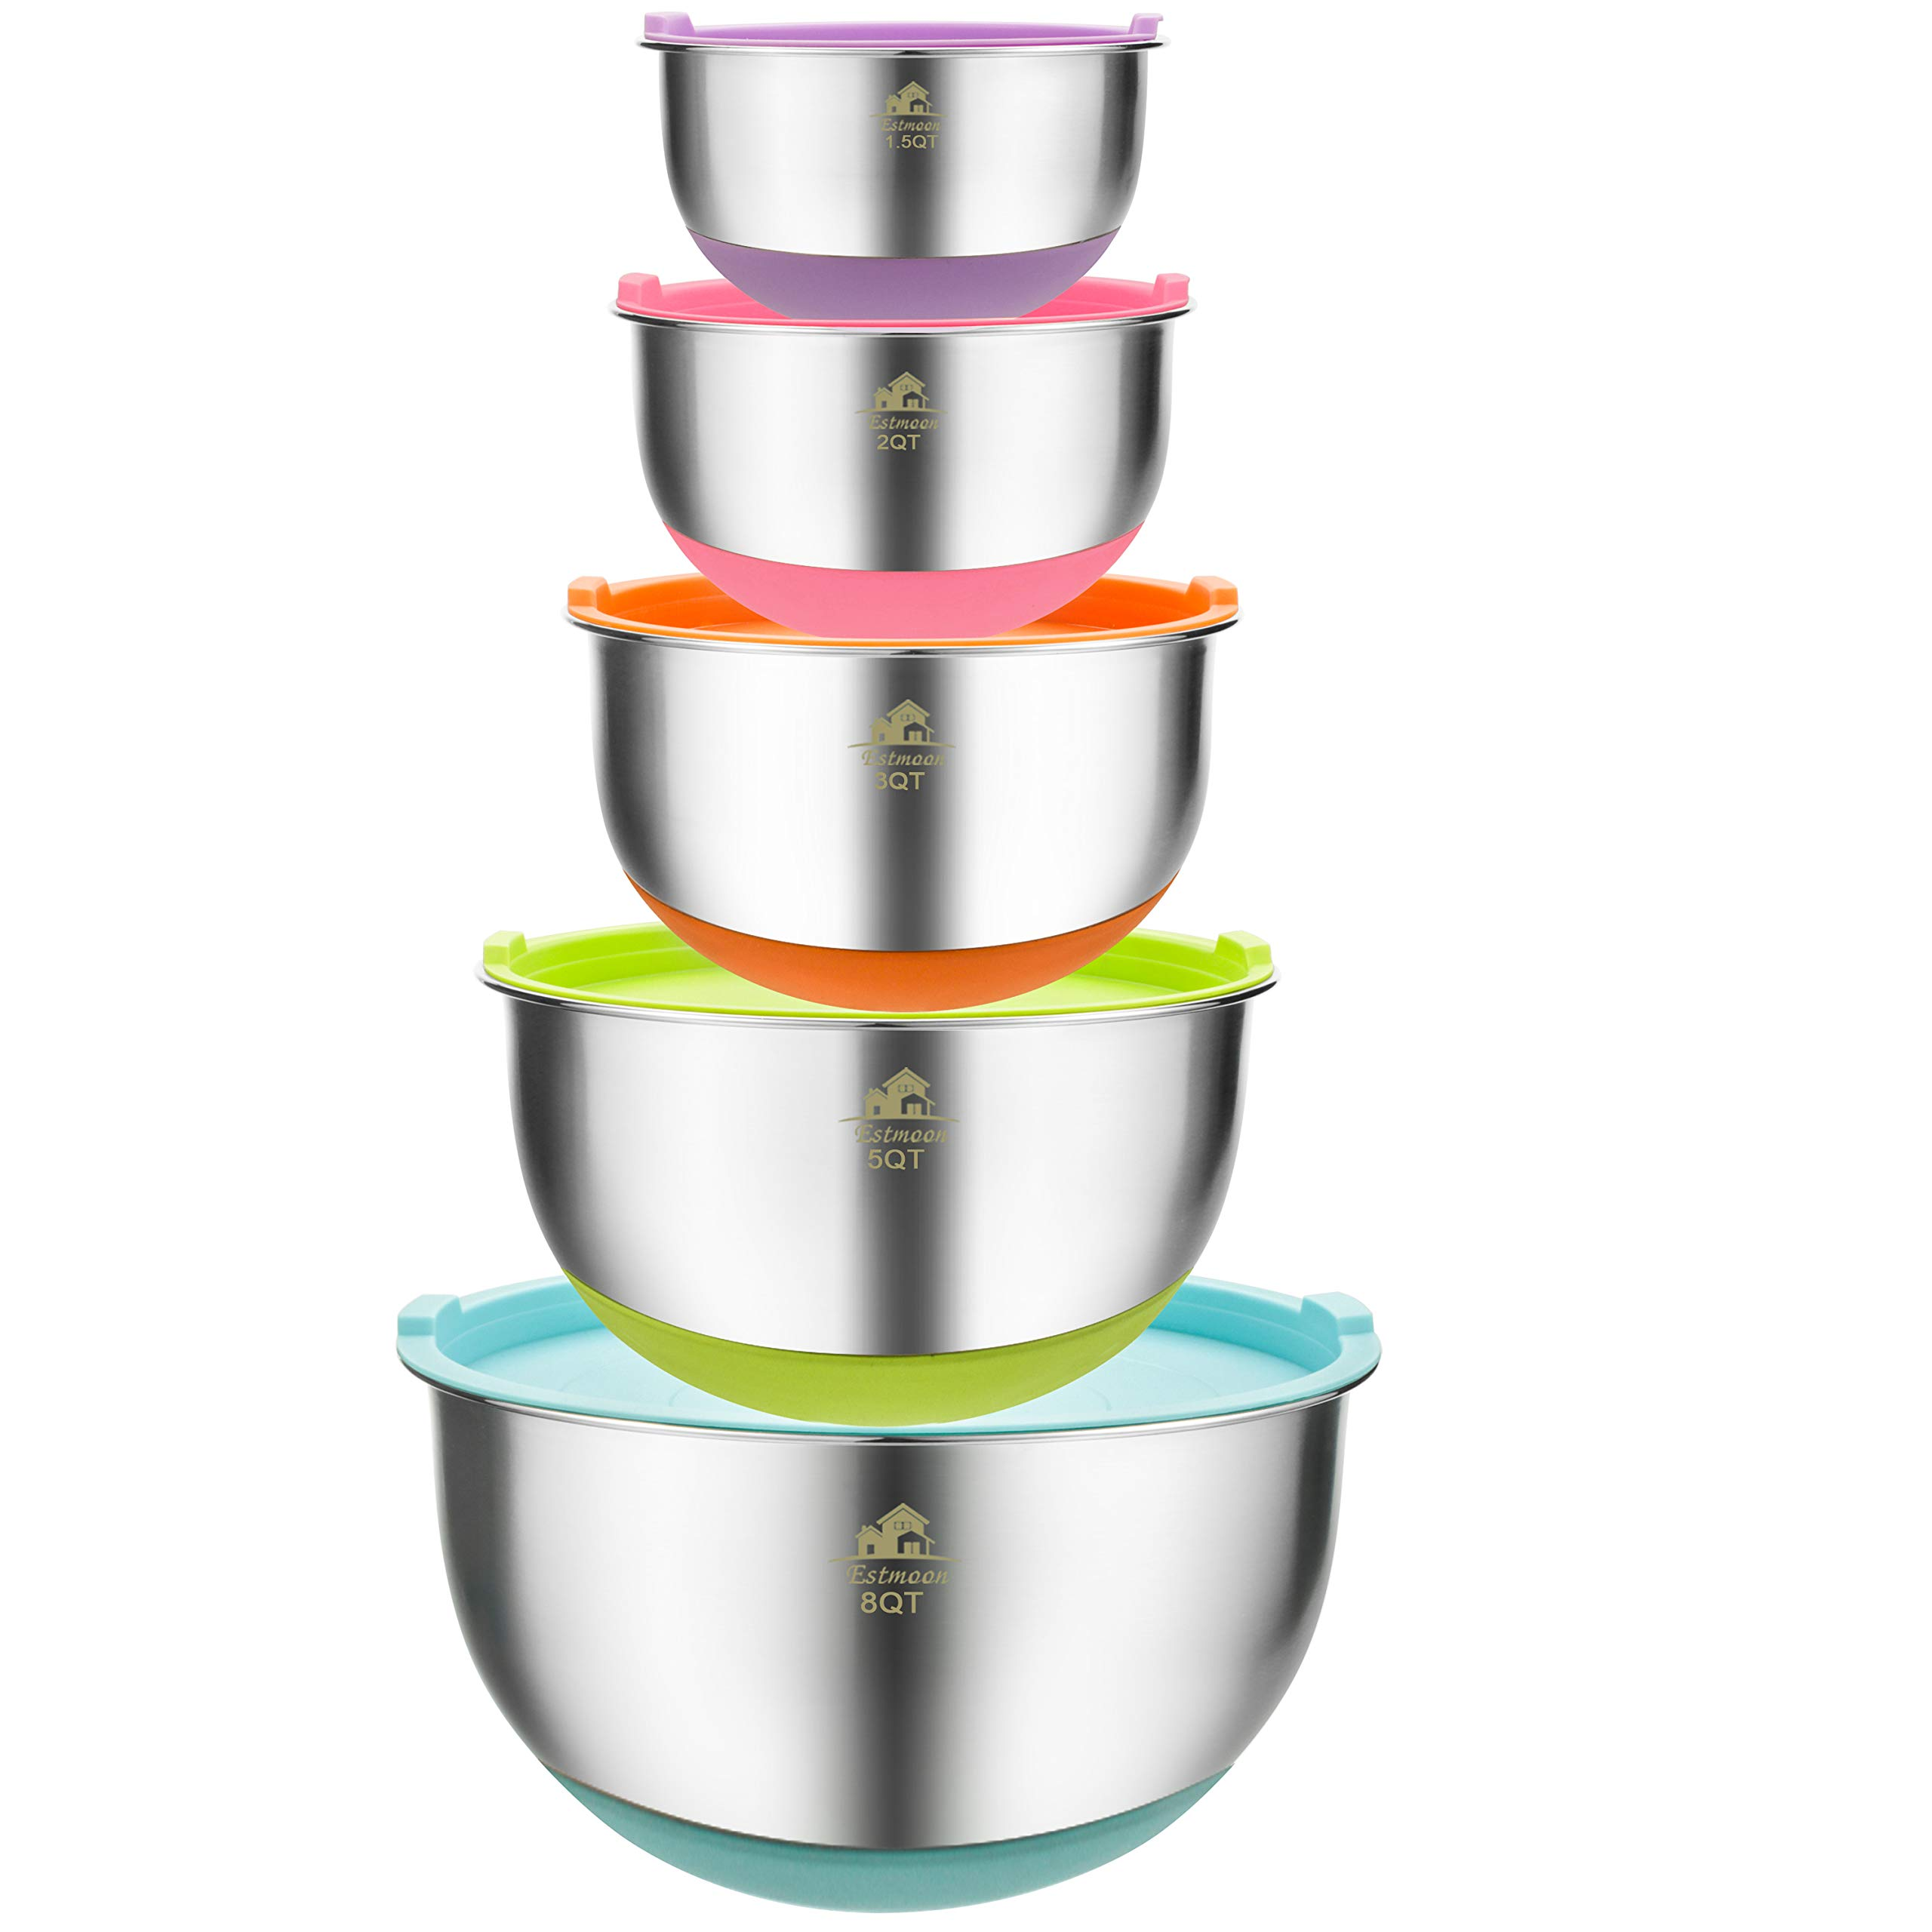 Estmoon Mixing Bowls Set of 5 - Premium Stainless Steel Nesting Mixing Bowls with Lids, Non-Slip Colorful Silicone Bottom, for Healthy Meal Mixing, Stackable Storage (1.5, 2.0, 3.0, 5.0, 8.0 qt)